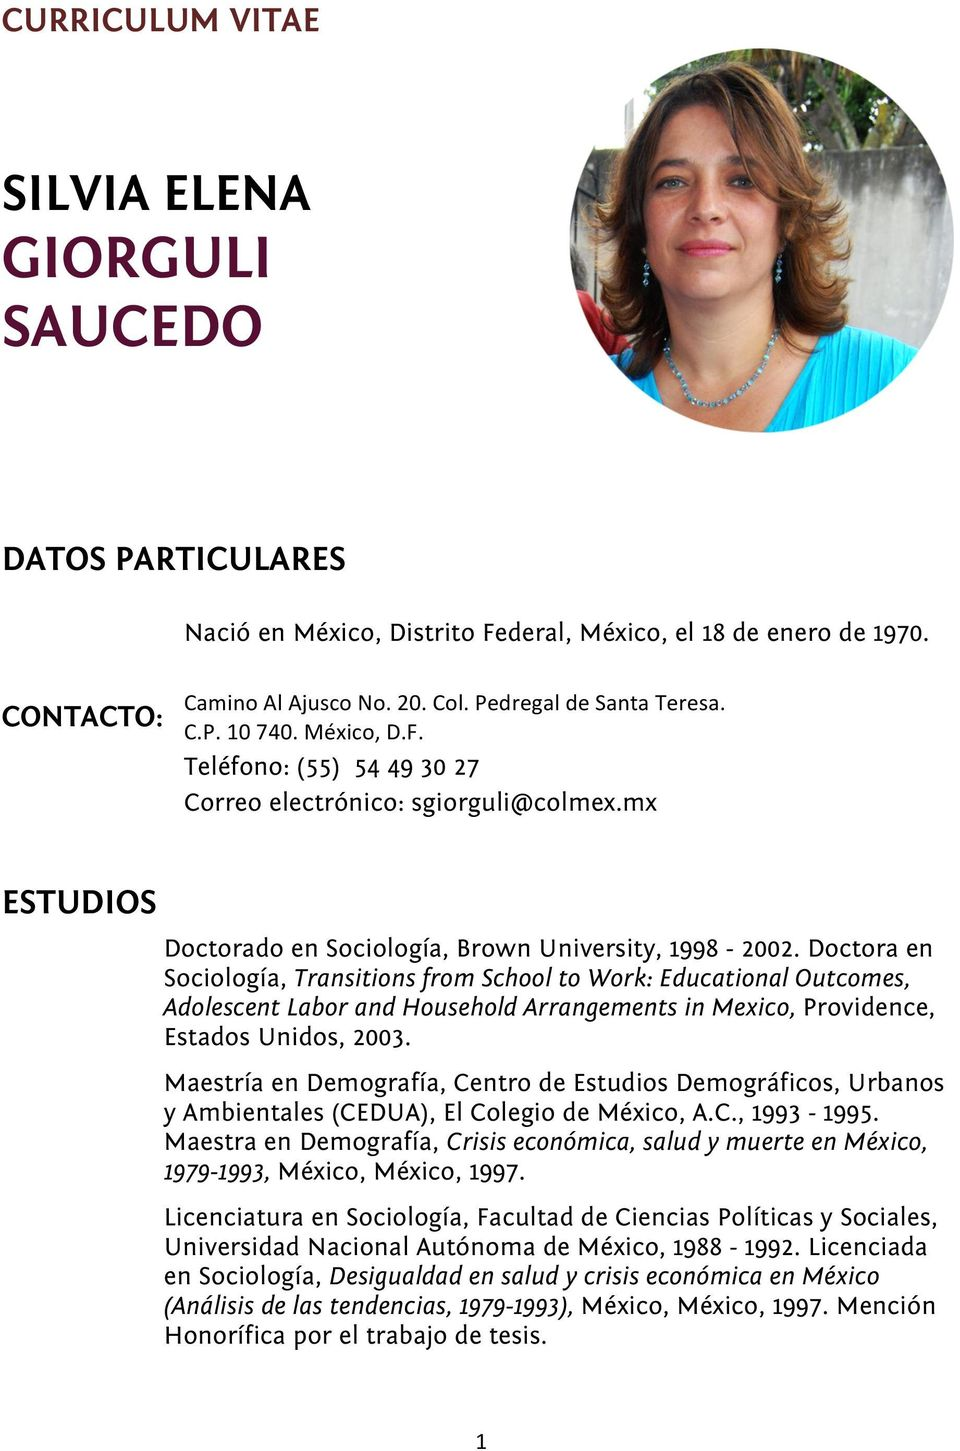 Doctora en Sociología, Transitions from School to Work: Educational Outcomes, Adolescent Labor and Household Arrangements in Mexico, Providence, Estados Unidos, 2003.